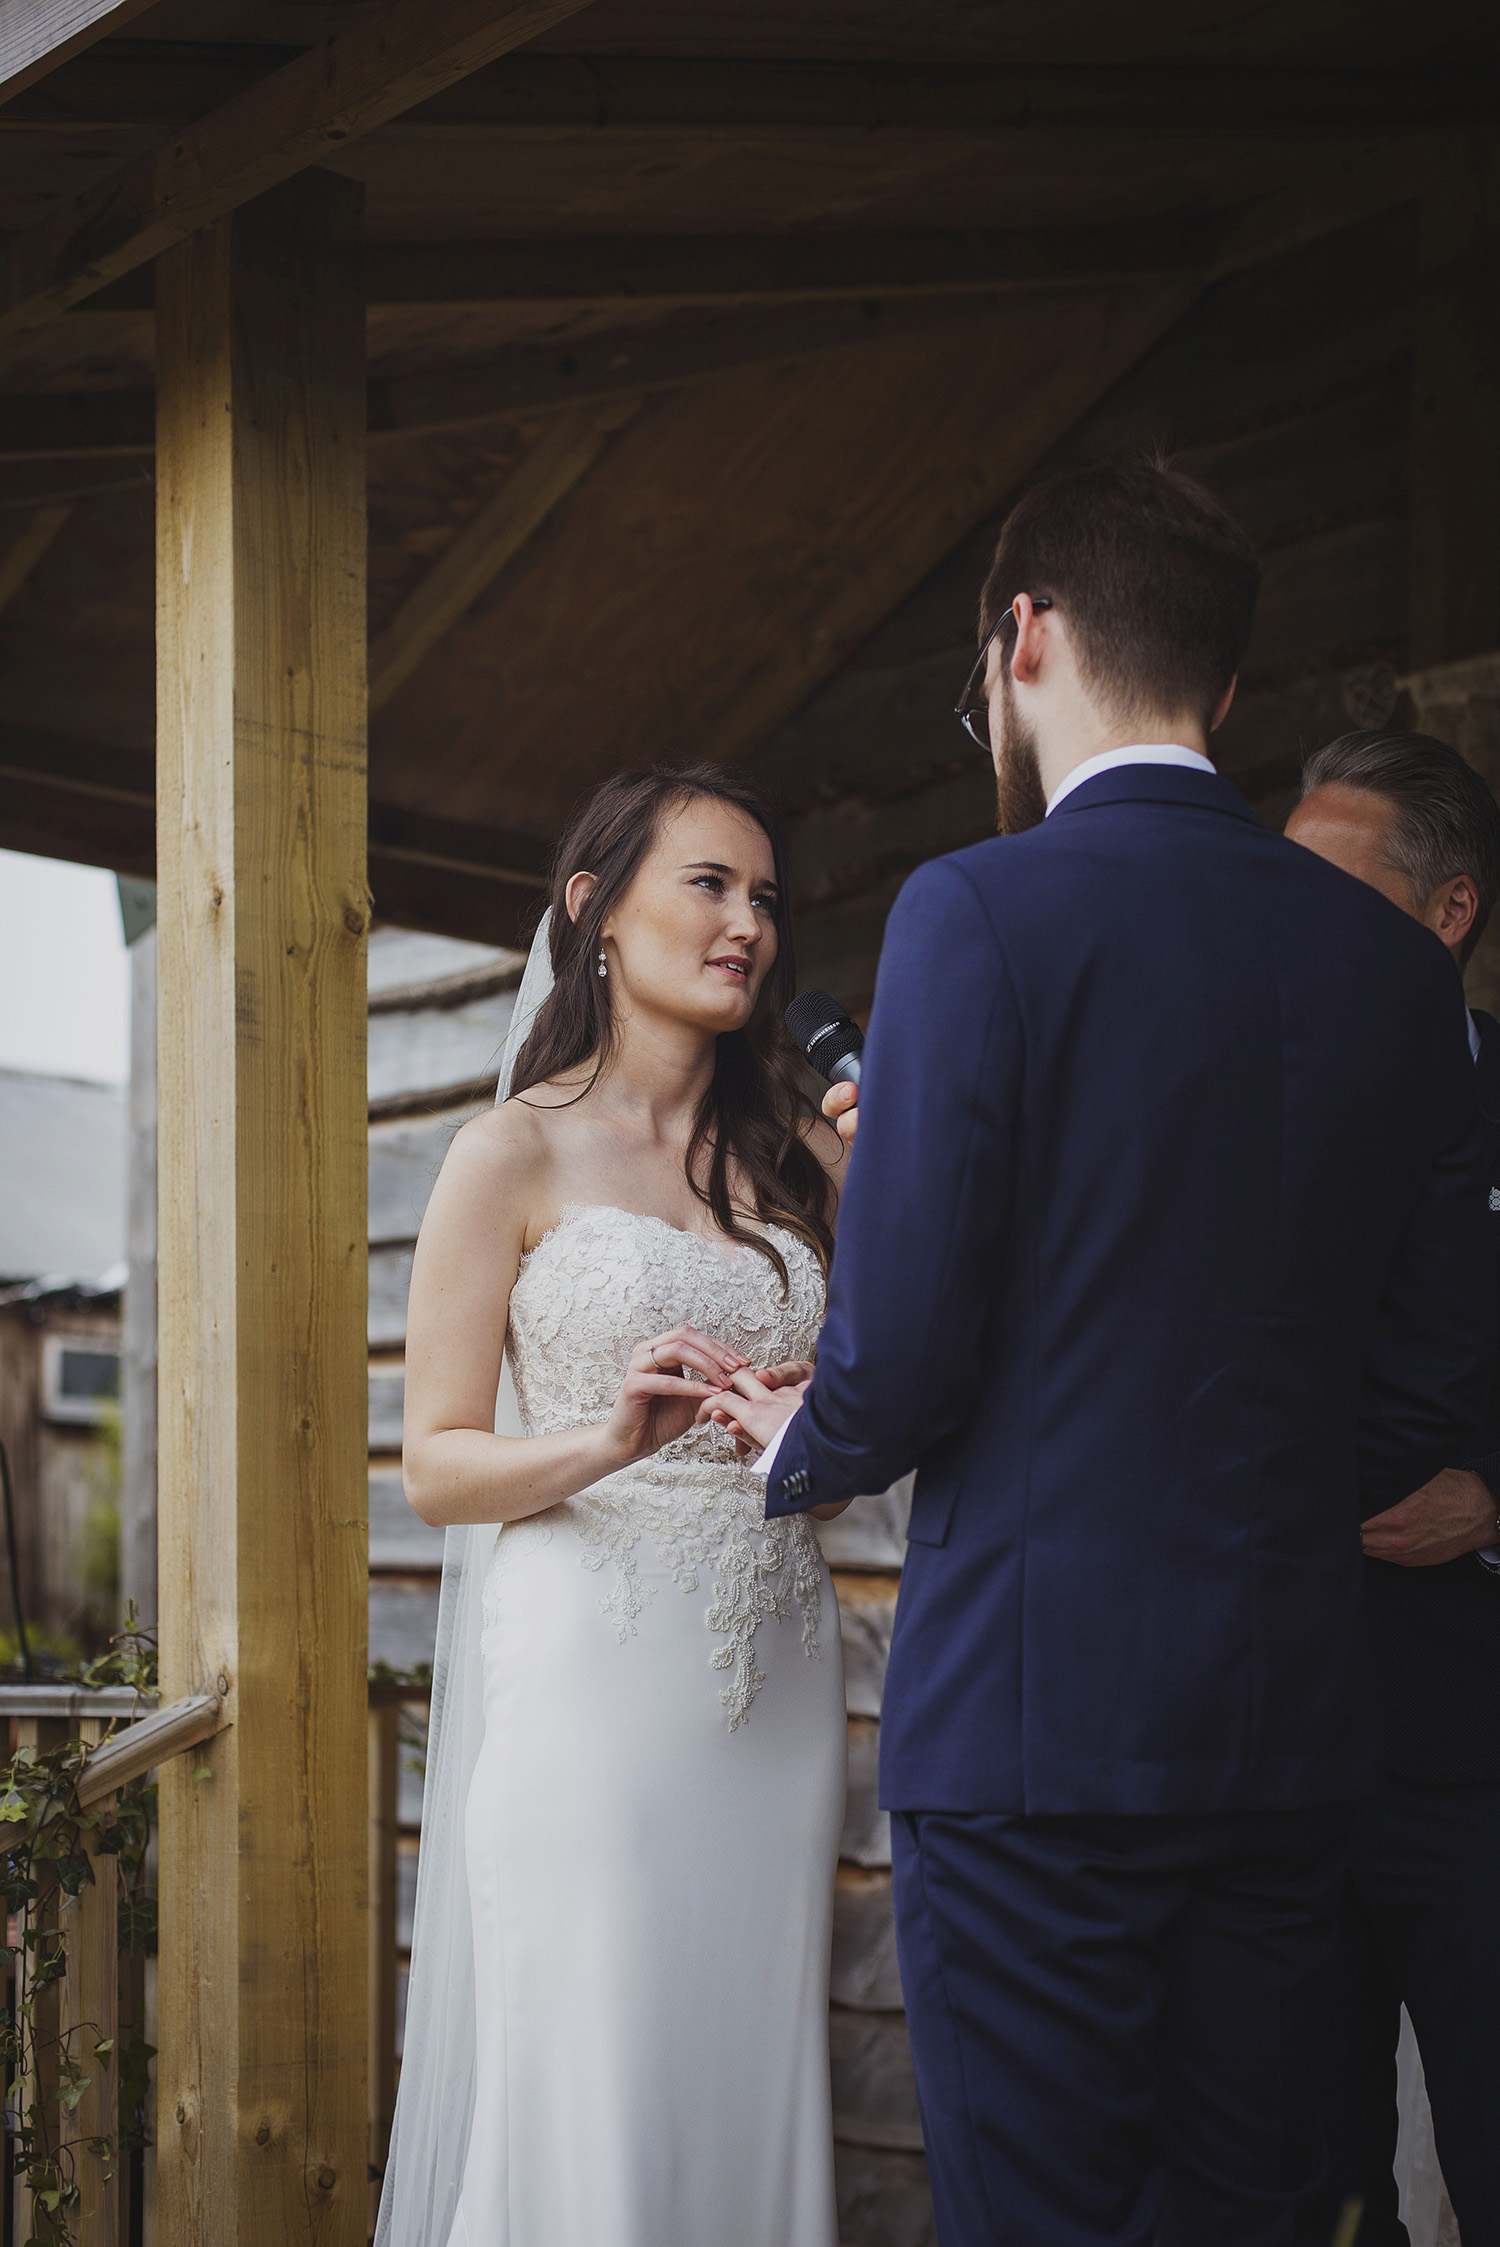 exchanging rings at wedding ceremony at cott farm barn wedding venue somerset